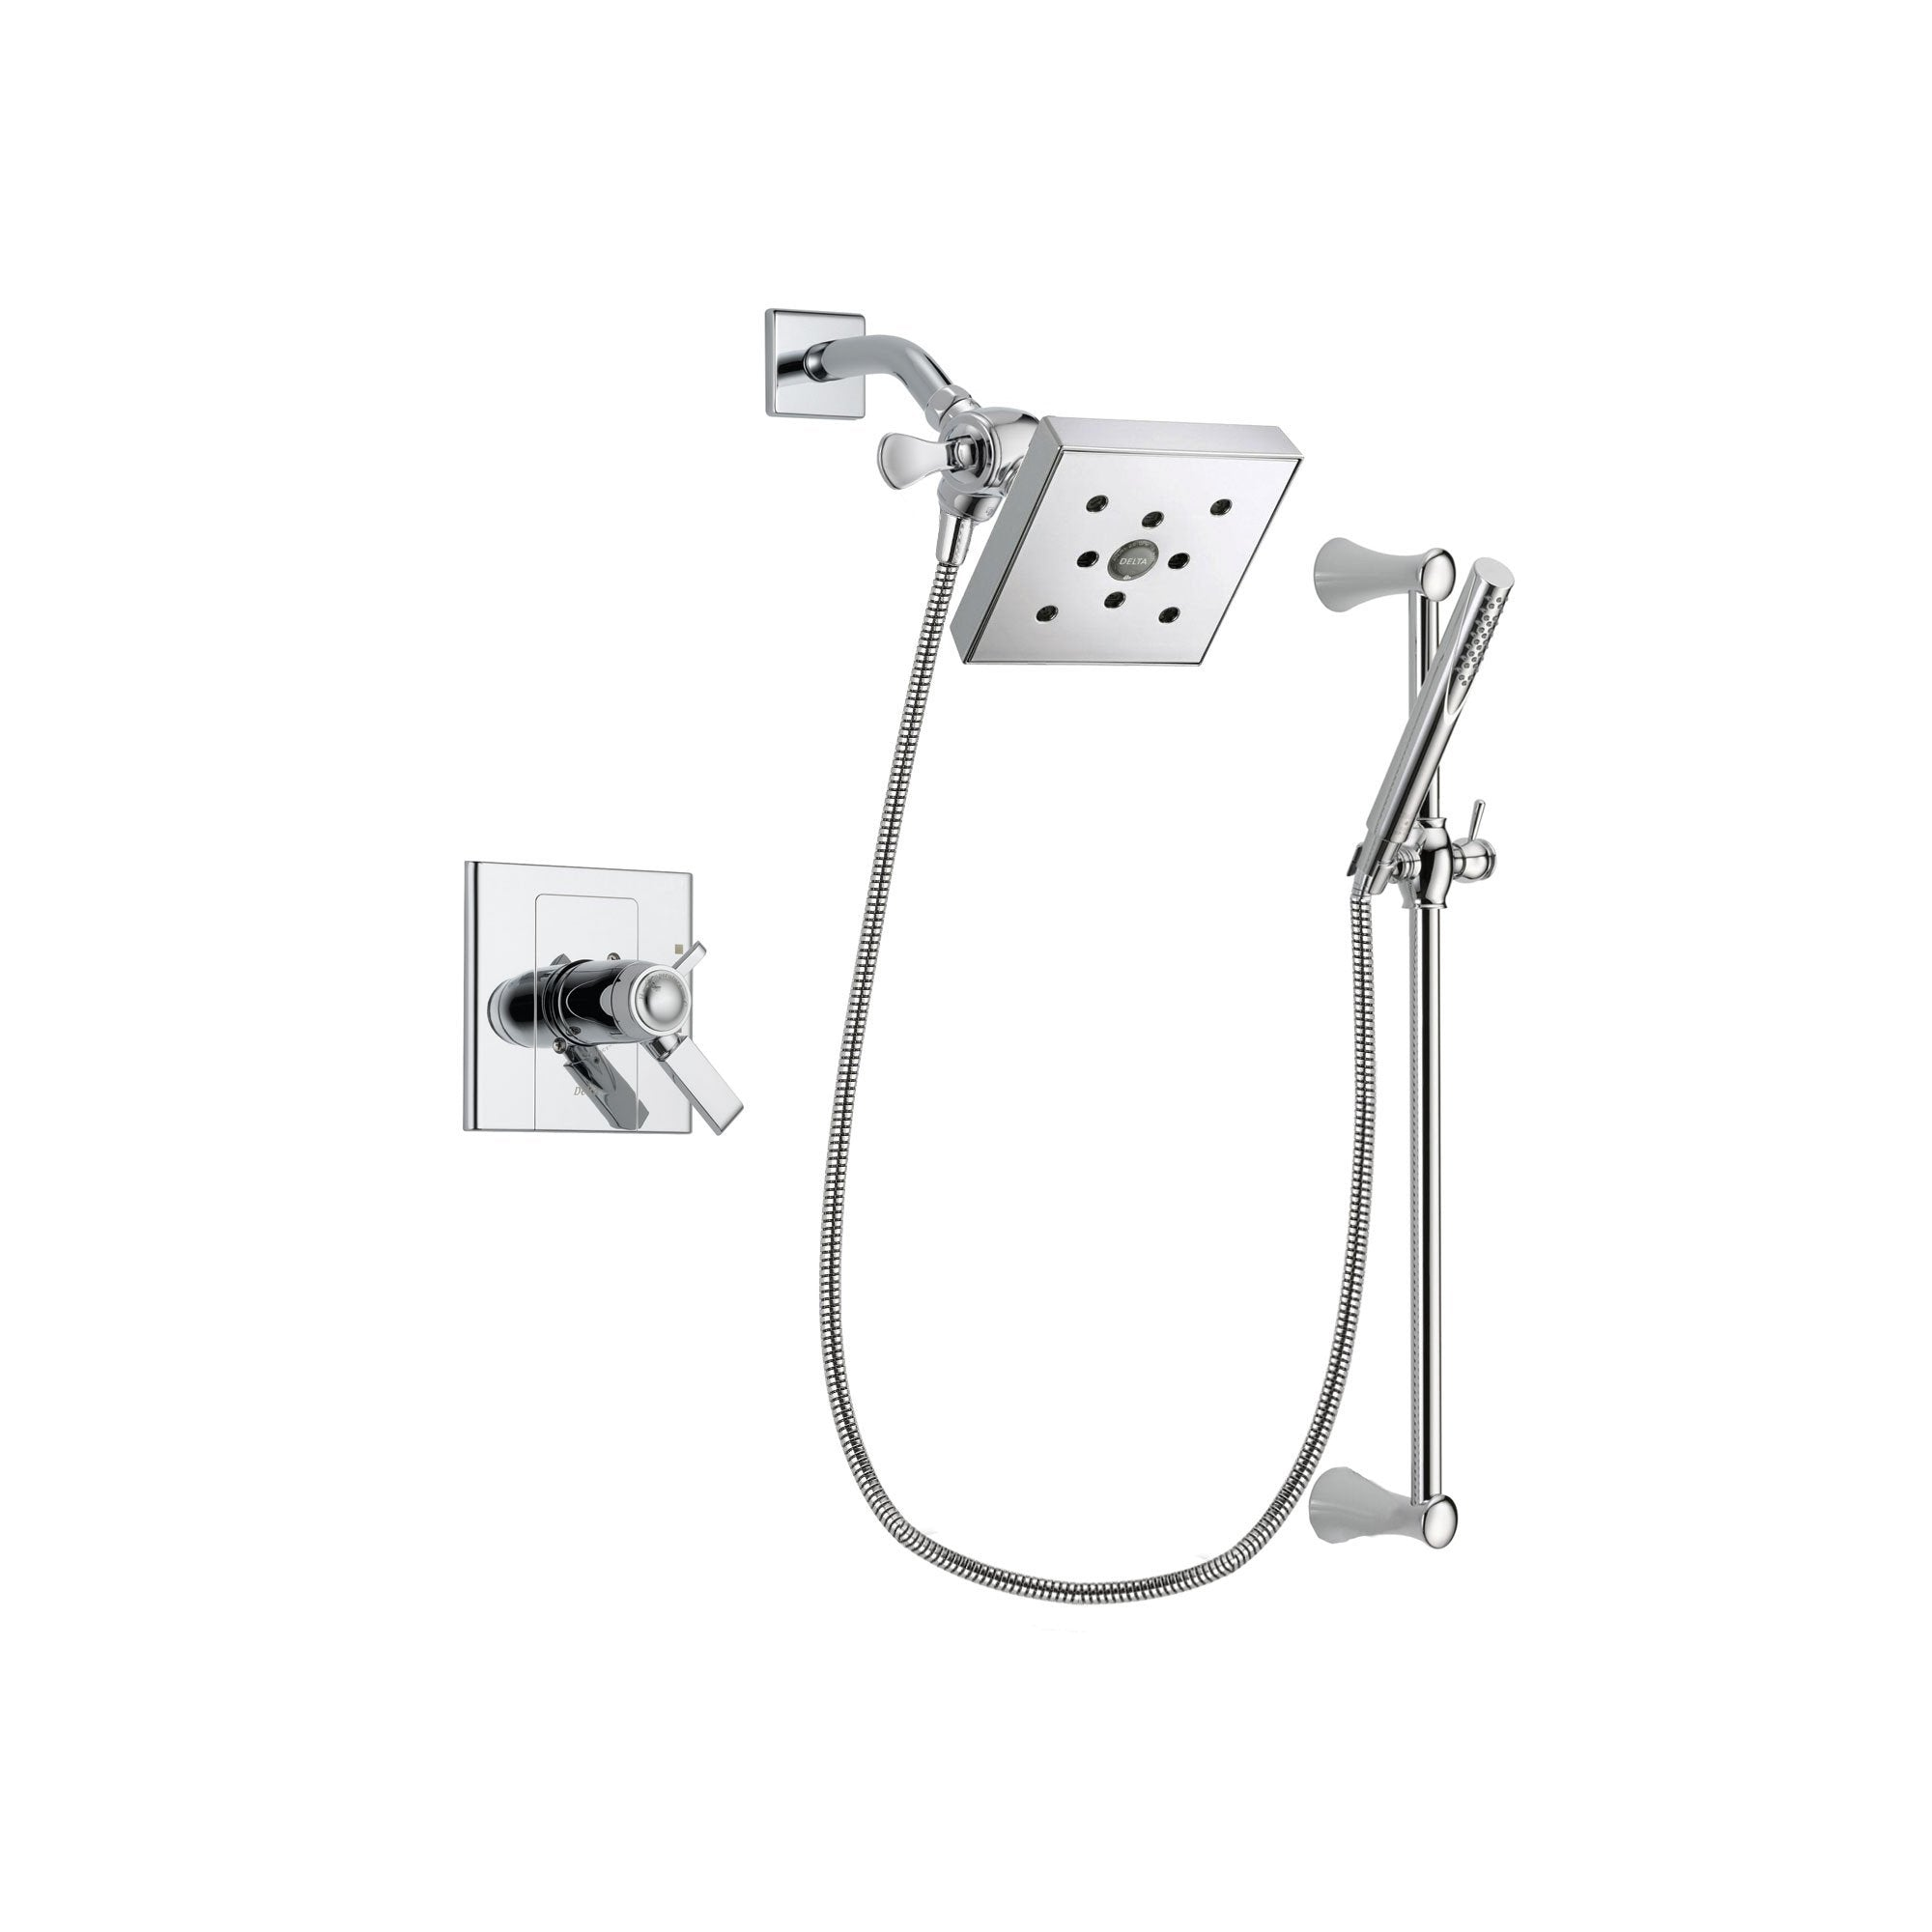 Delta Arzo Chrome Finish Thermostatic Shower Faucet System Package with Square Shower Head and Modern Wall Mount Slide Bar with Handheld Shower Spray Includes Rough-in Valve DSP0277V